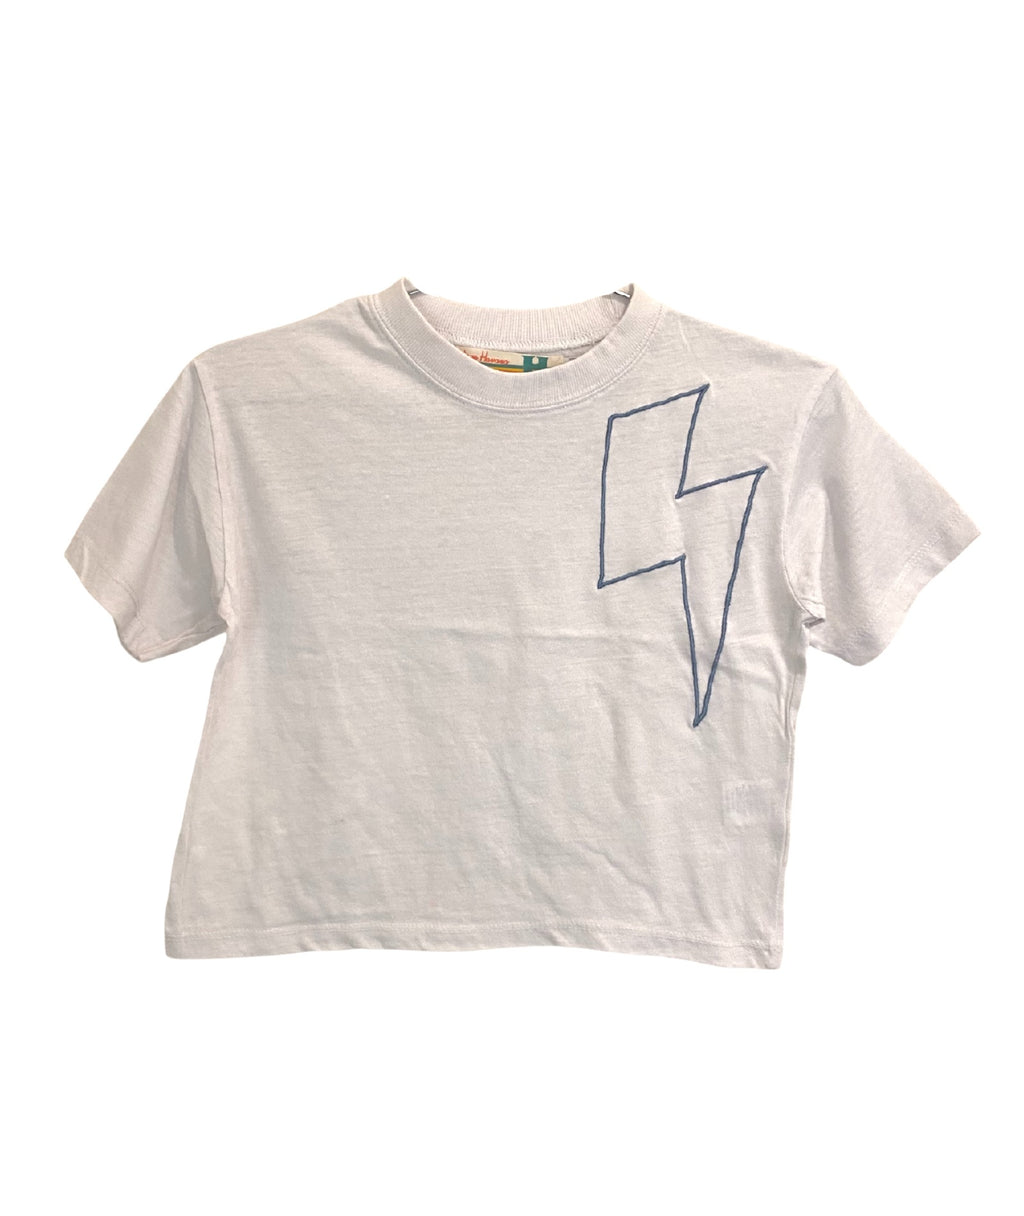 Vintage Havana Girls White Embroidered Bolt Tee